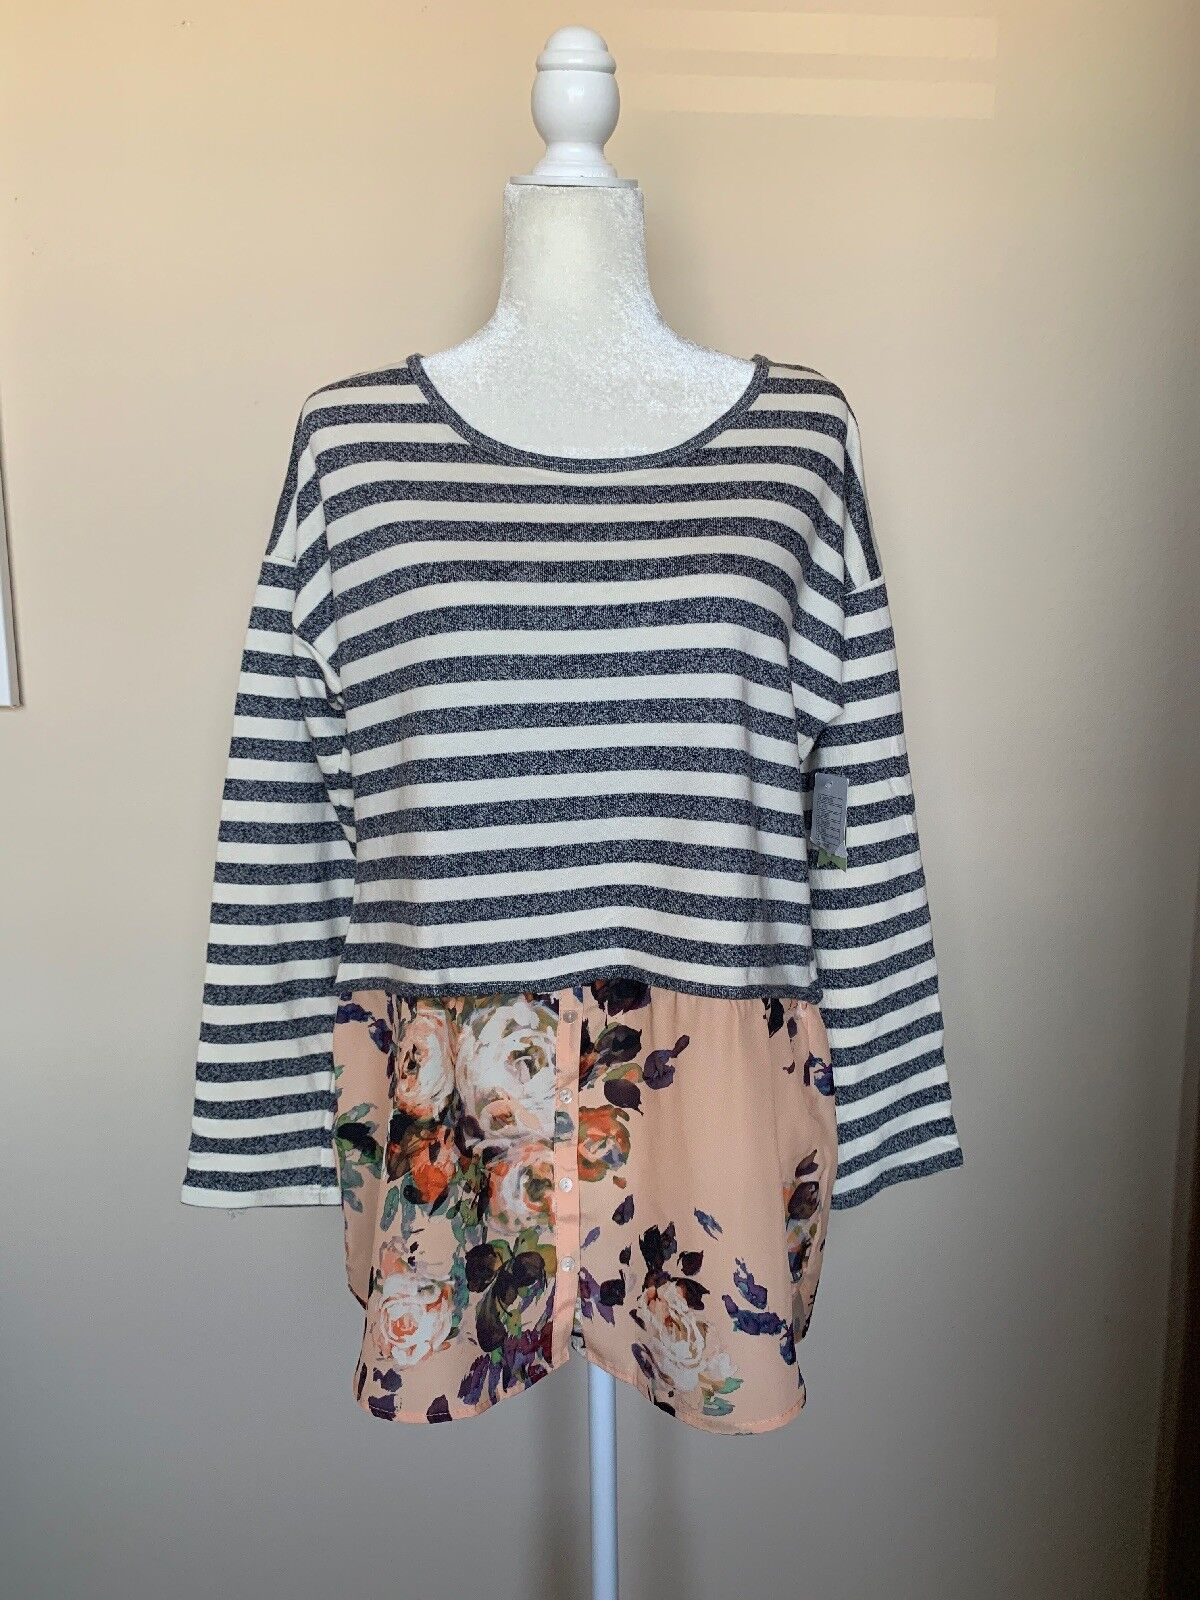 NWT Anthropologie Postmark Floral Layerot Ginny Top, Größe L Tunic Stripes Fall